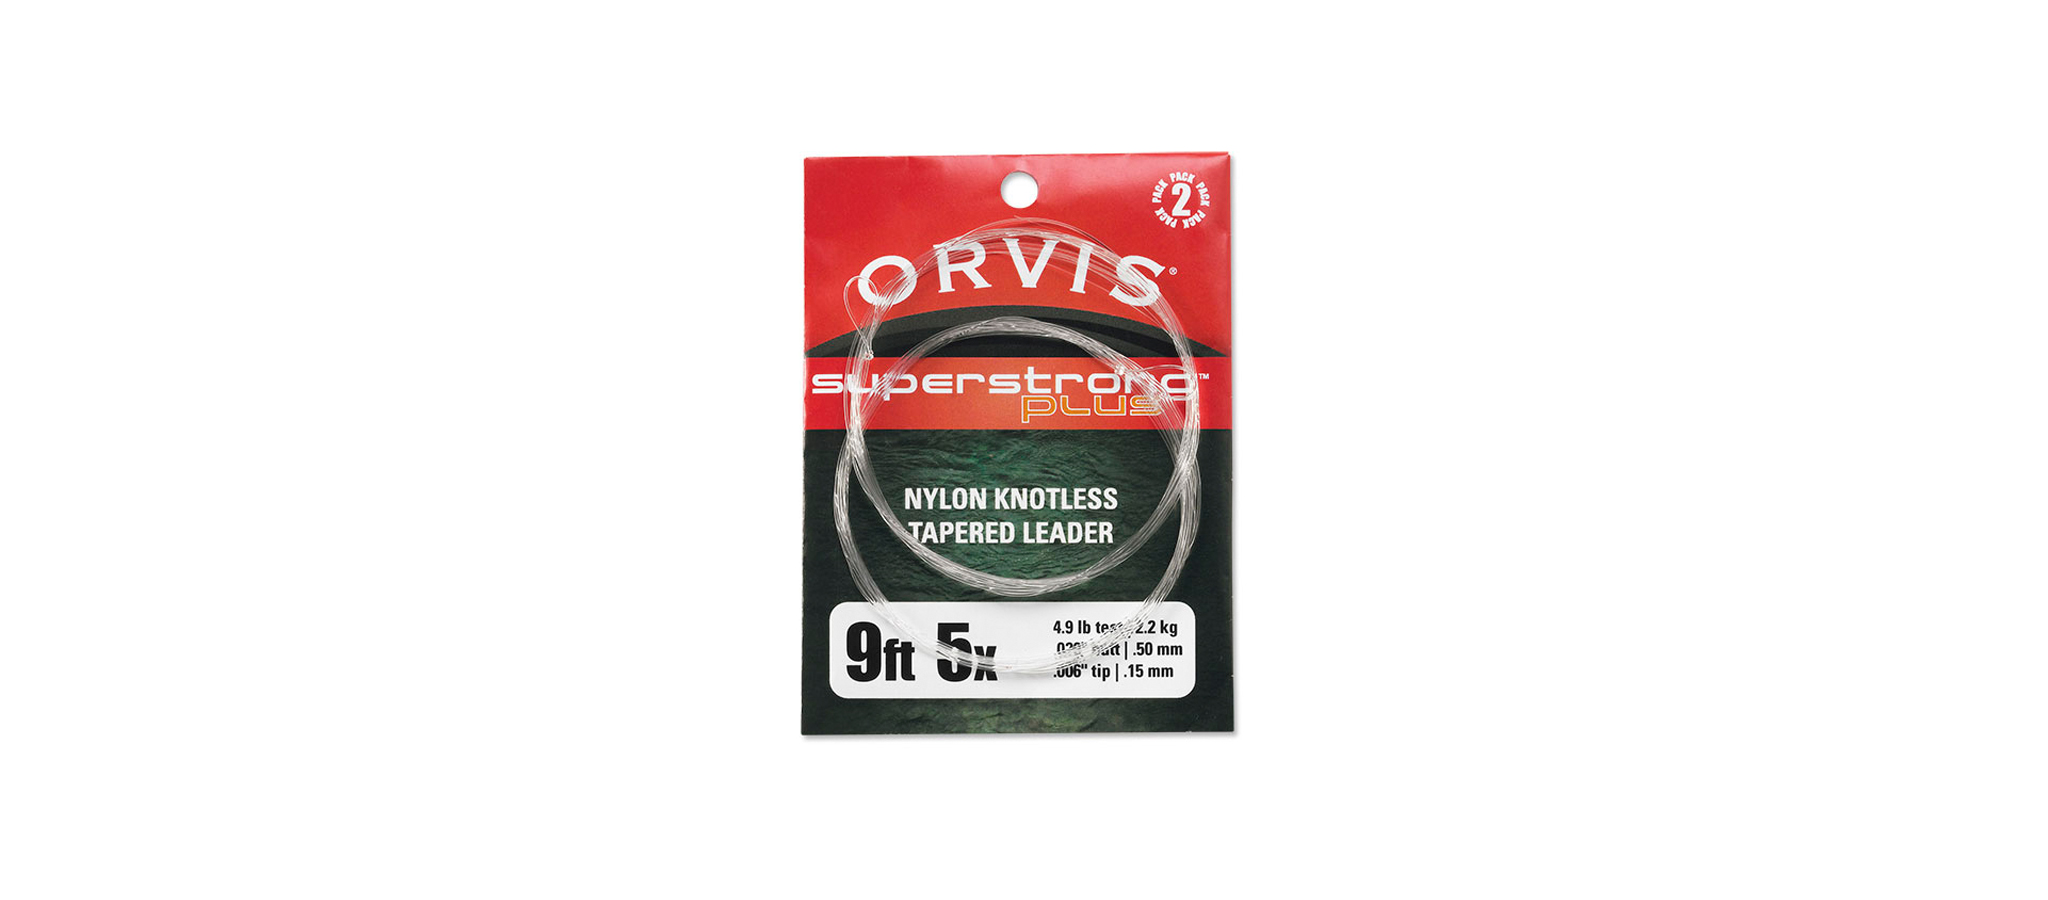 Orvis-Superstrong-Nylon-Vorfach-Verpackung